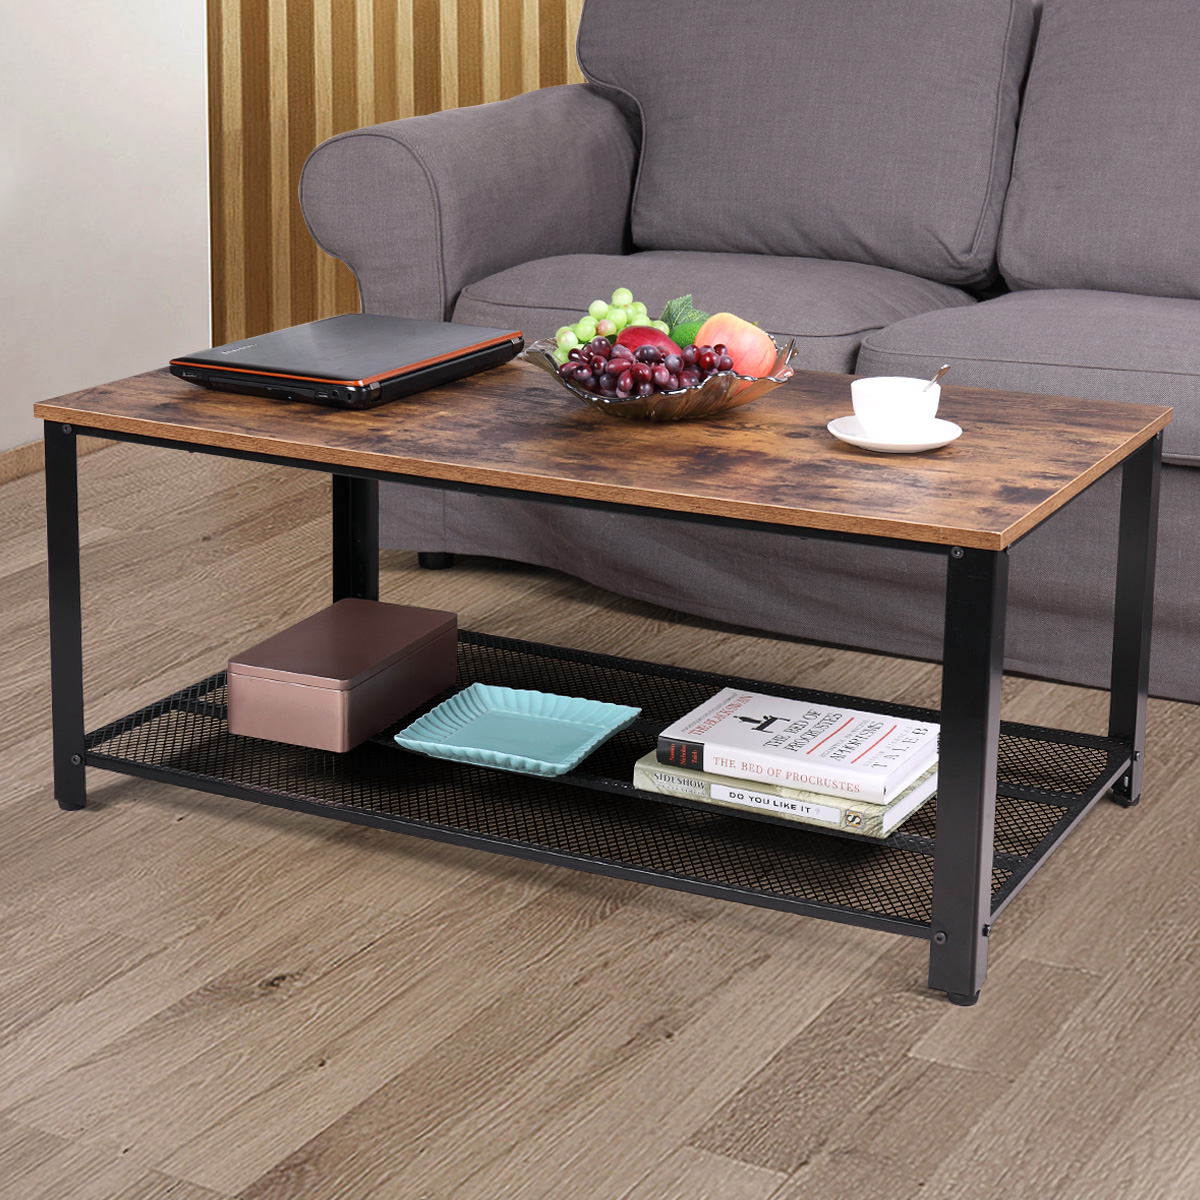 Jaxpety 2 Tier Tail Wood Coffee, Tables For Living Rooms